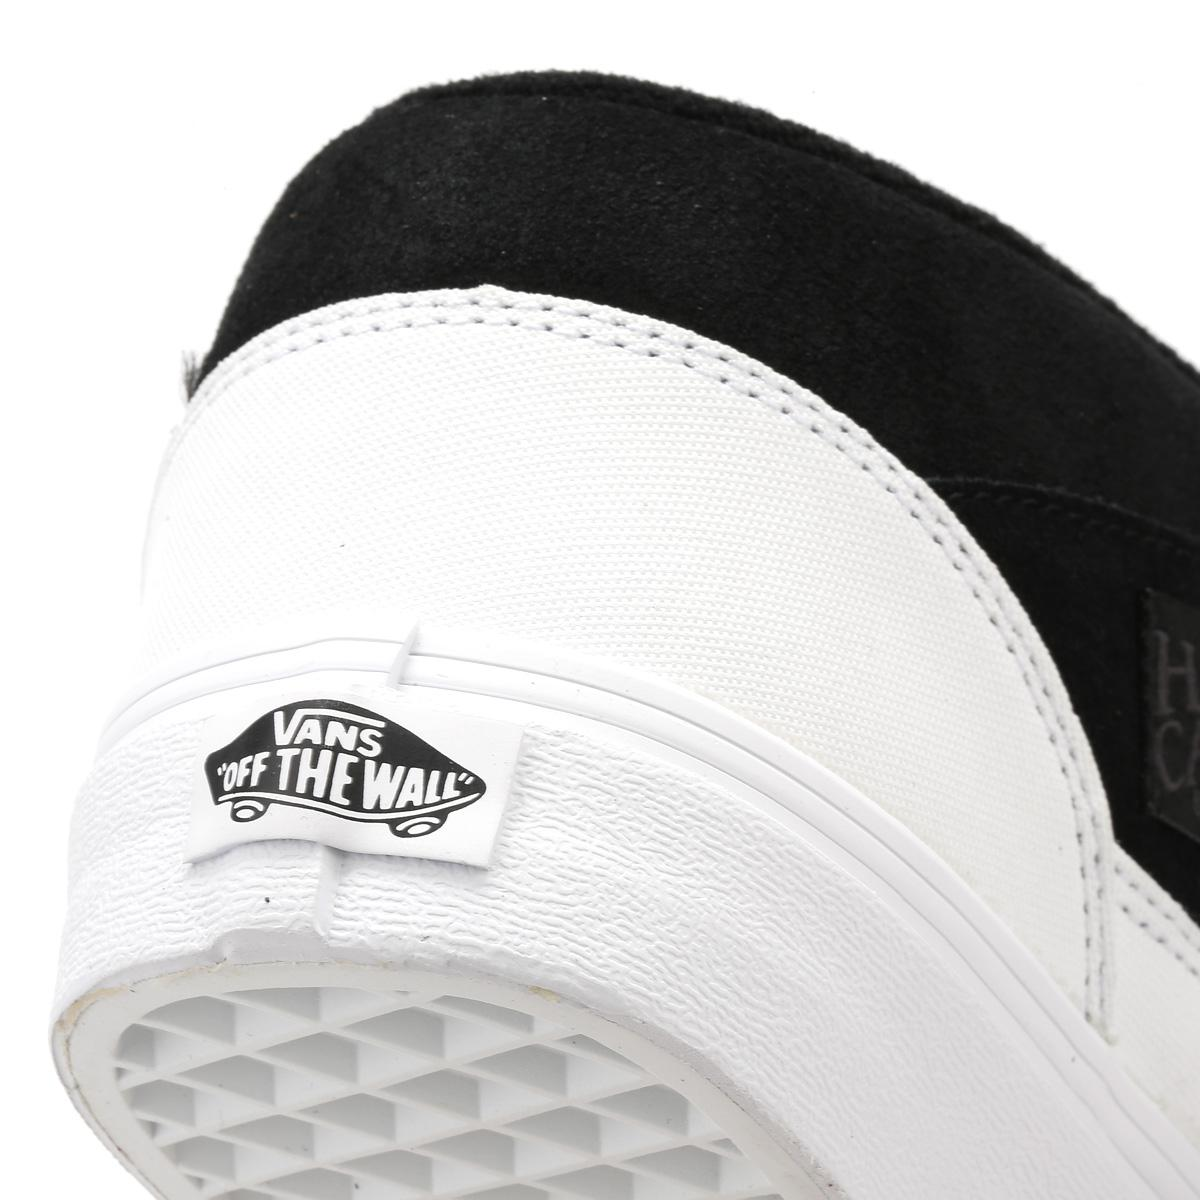 5ce9f7a223 Lyst - Vans Mens Dipped Black   True White Half Cab Trainers in ...